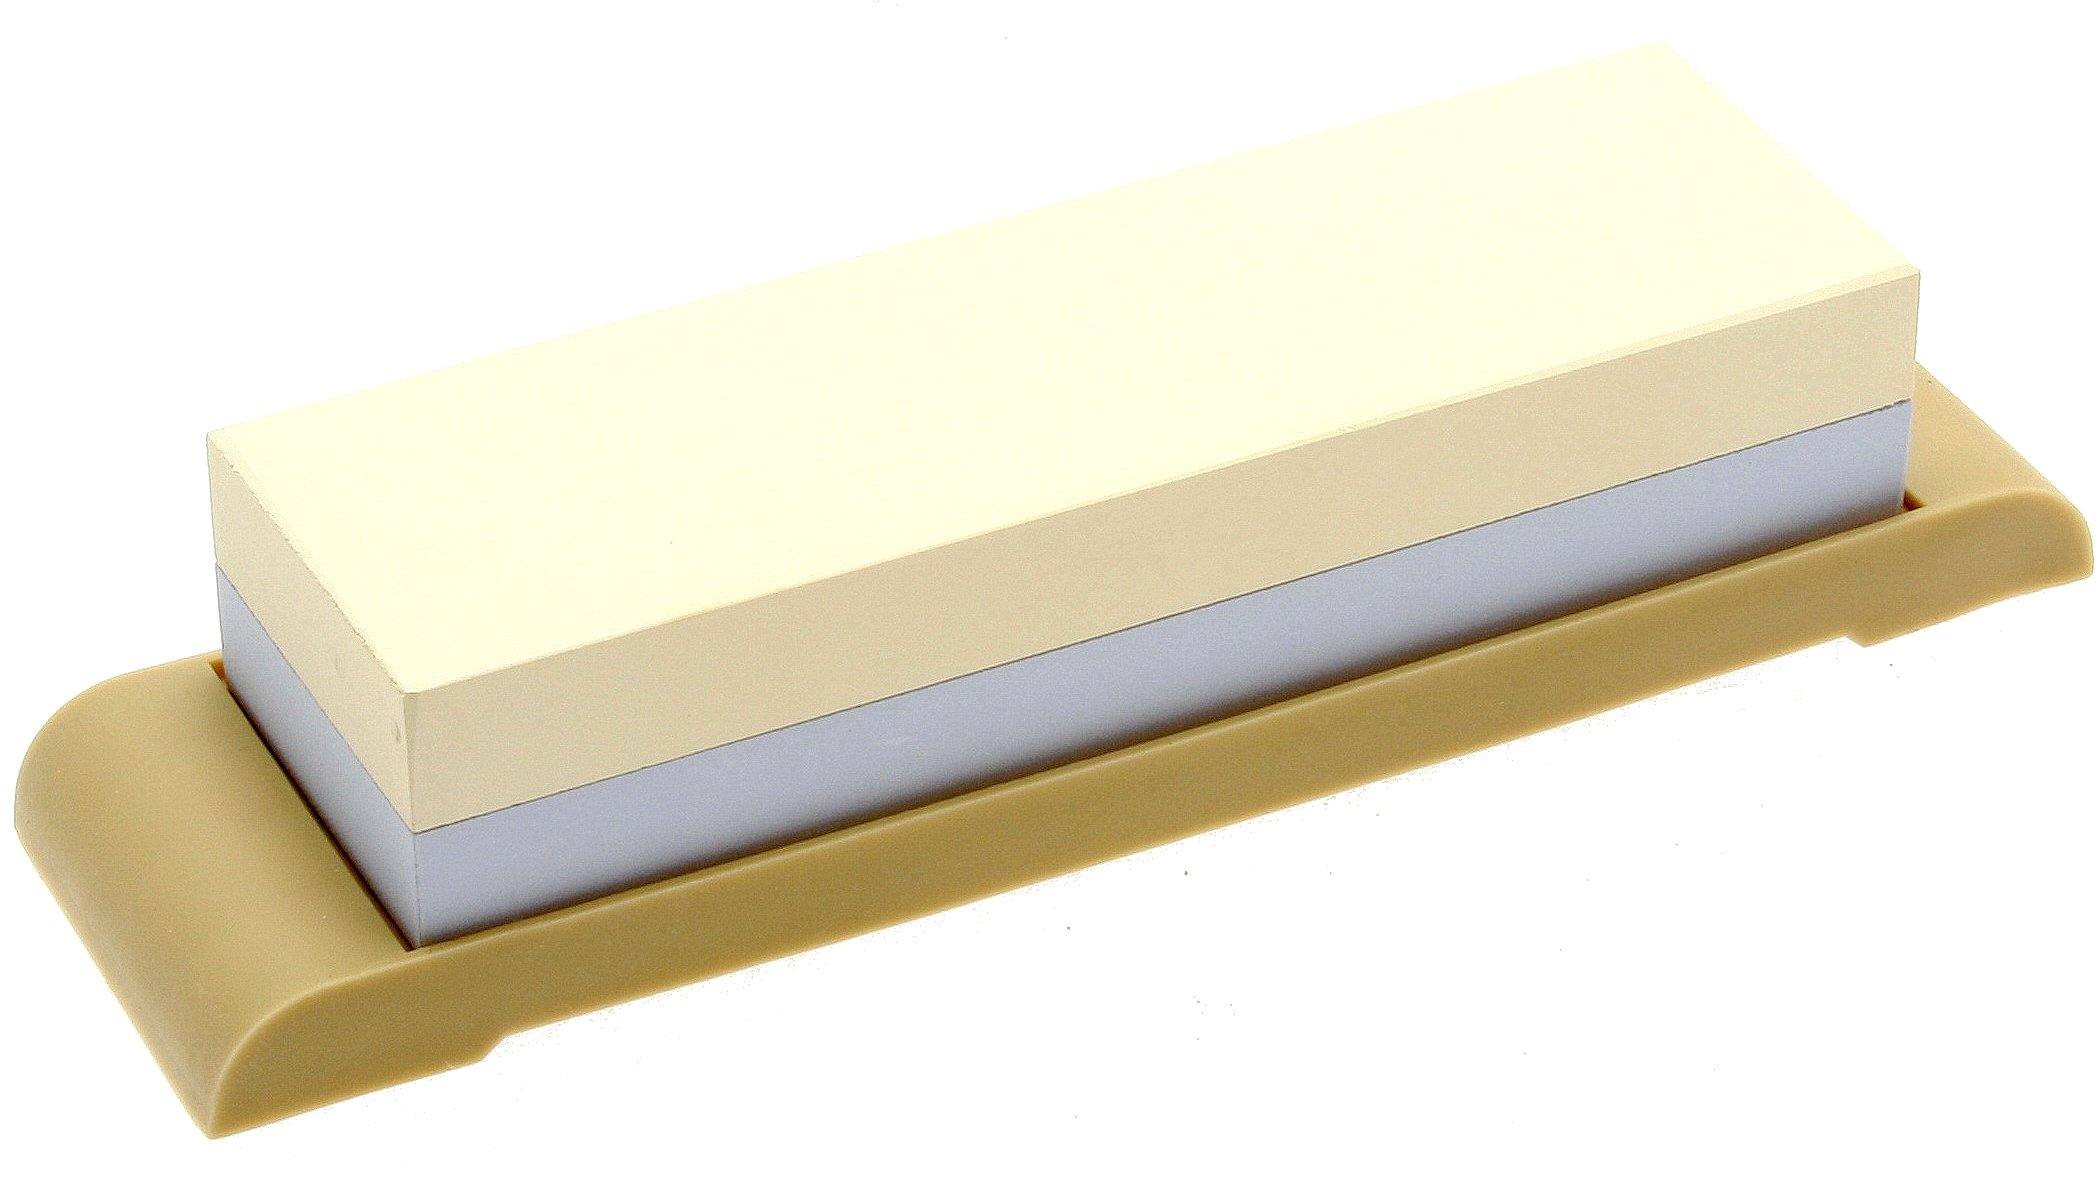 Suehiro Japanese Sharpening Stone, Dual-sided #1000 and #3000 Grit with Rubber Base, Compact